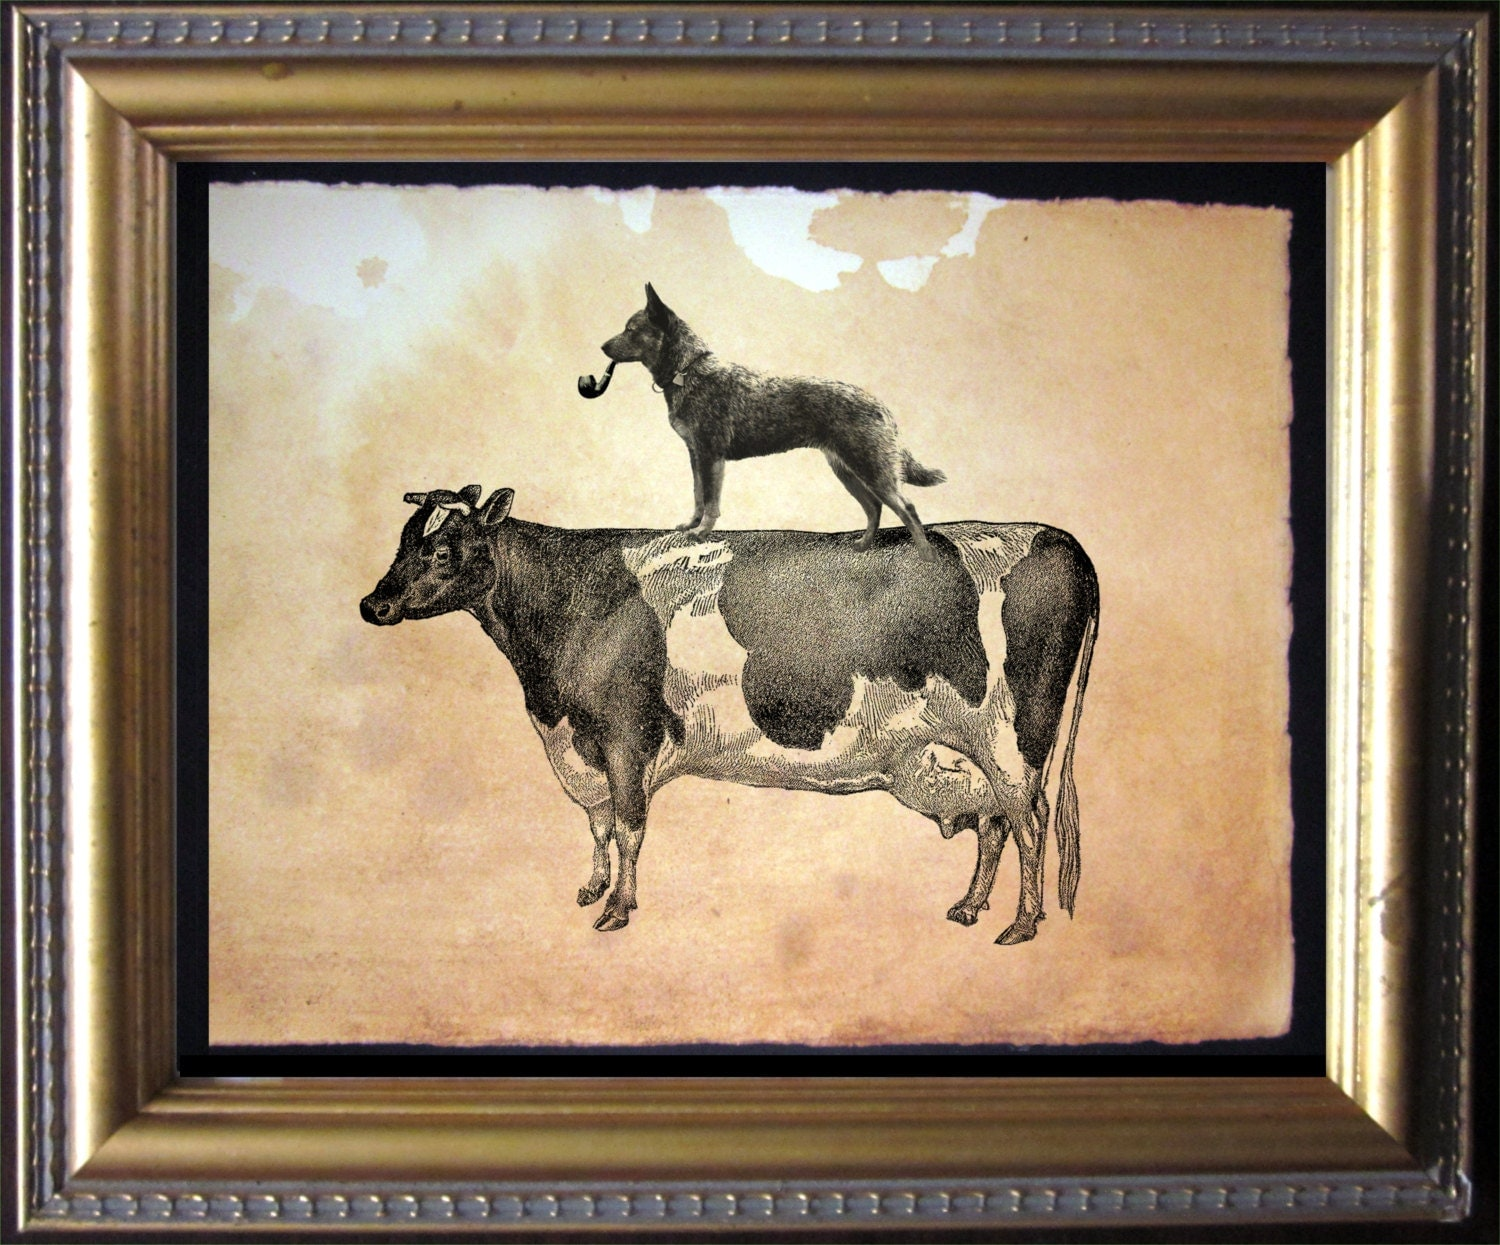 Australian Cattle Dog Riding Cow Vintage Collage Art Print